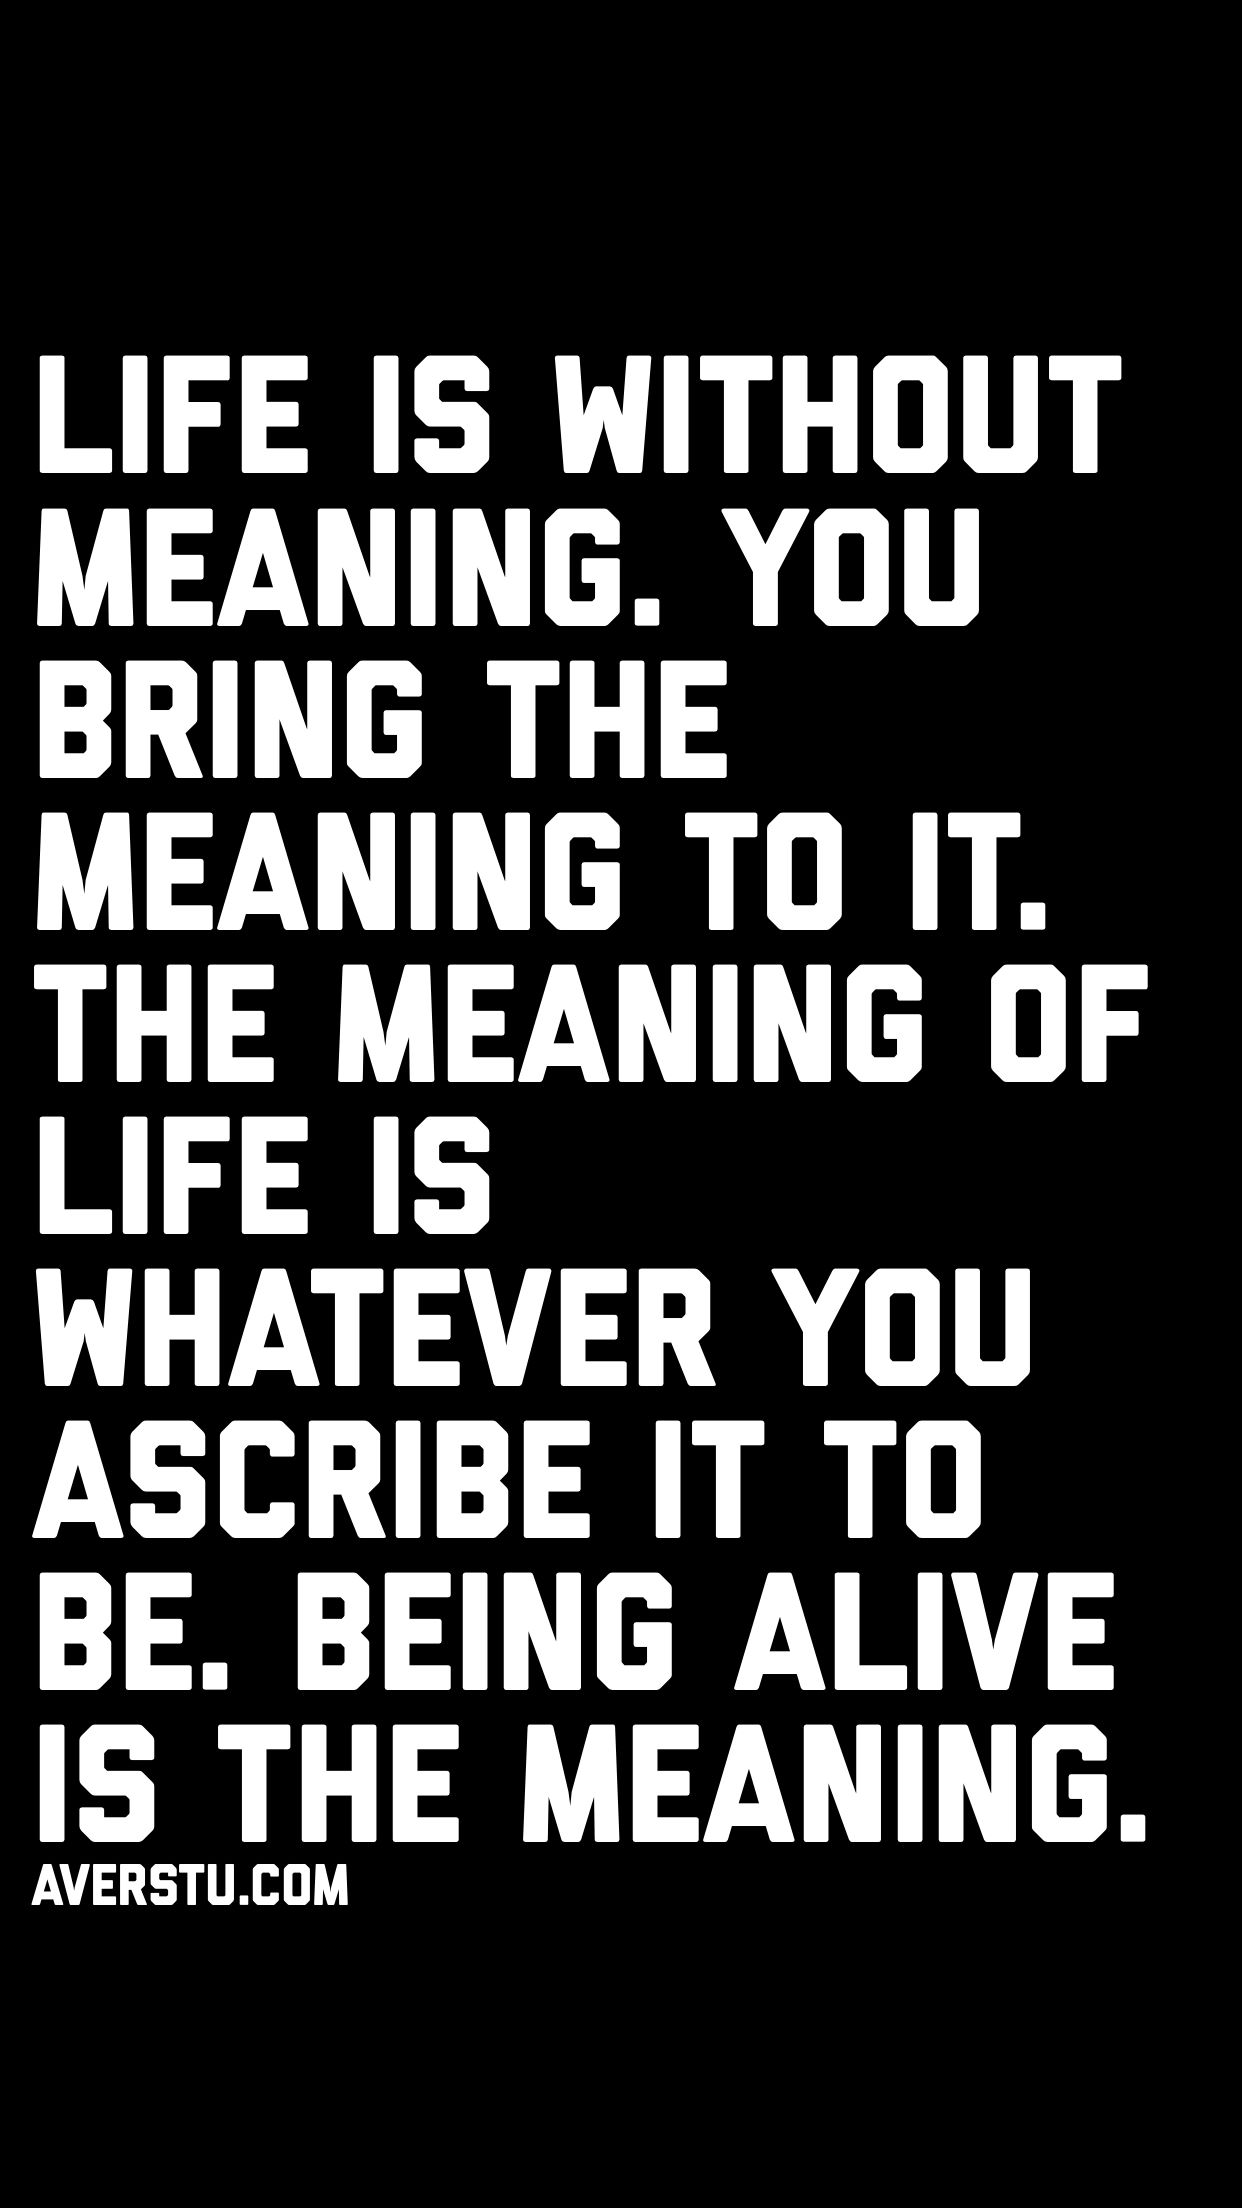 Life Is Without Meaning You Bring The Meaning To It The Meaning Of